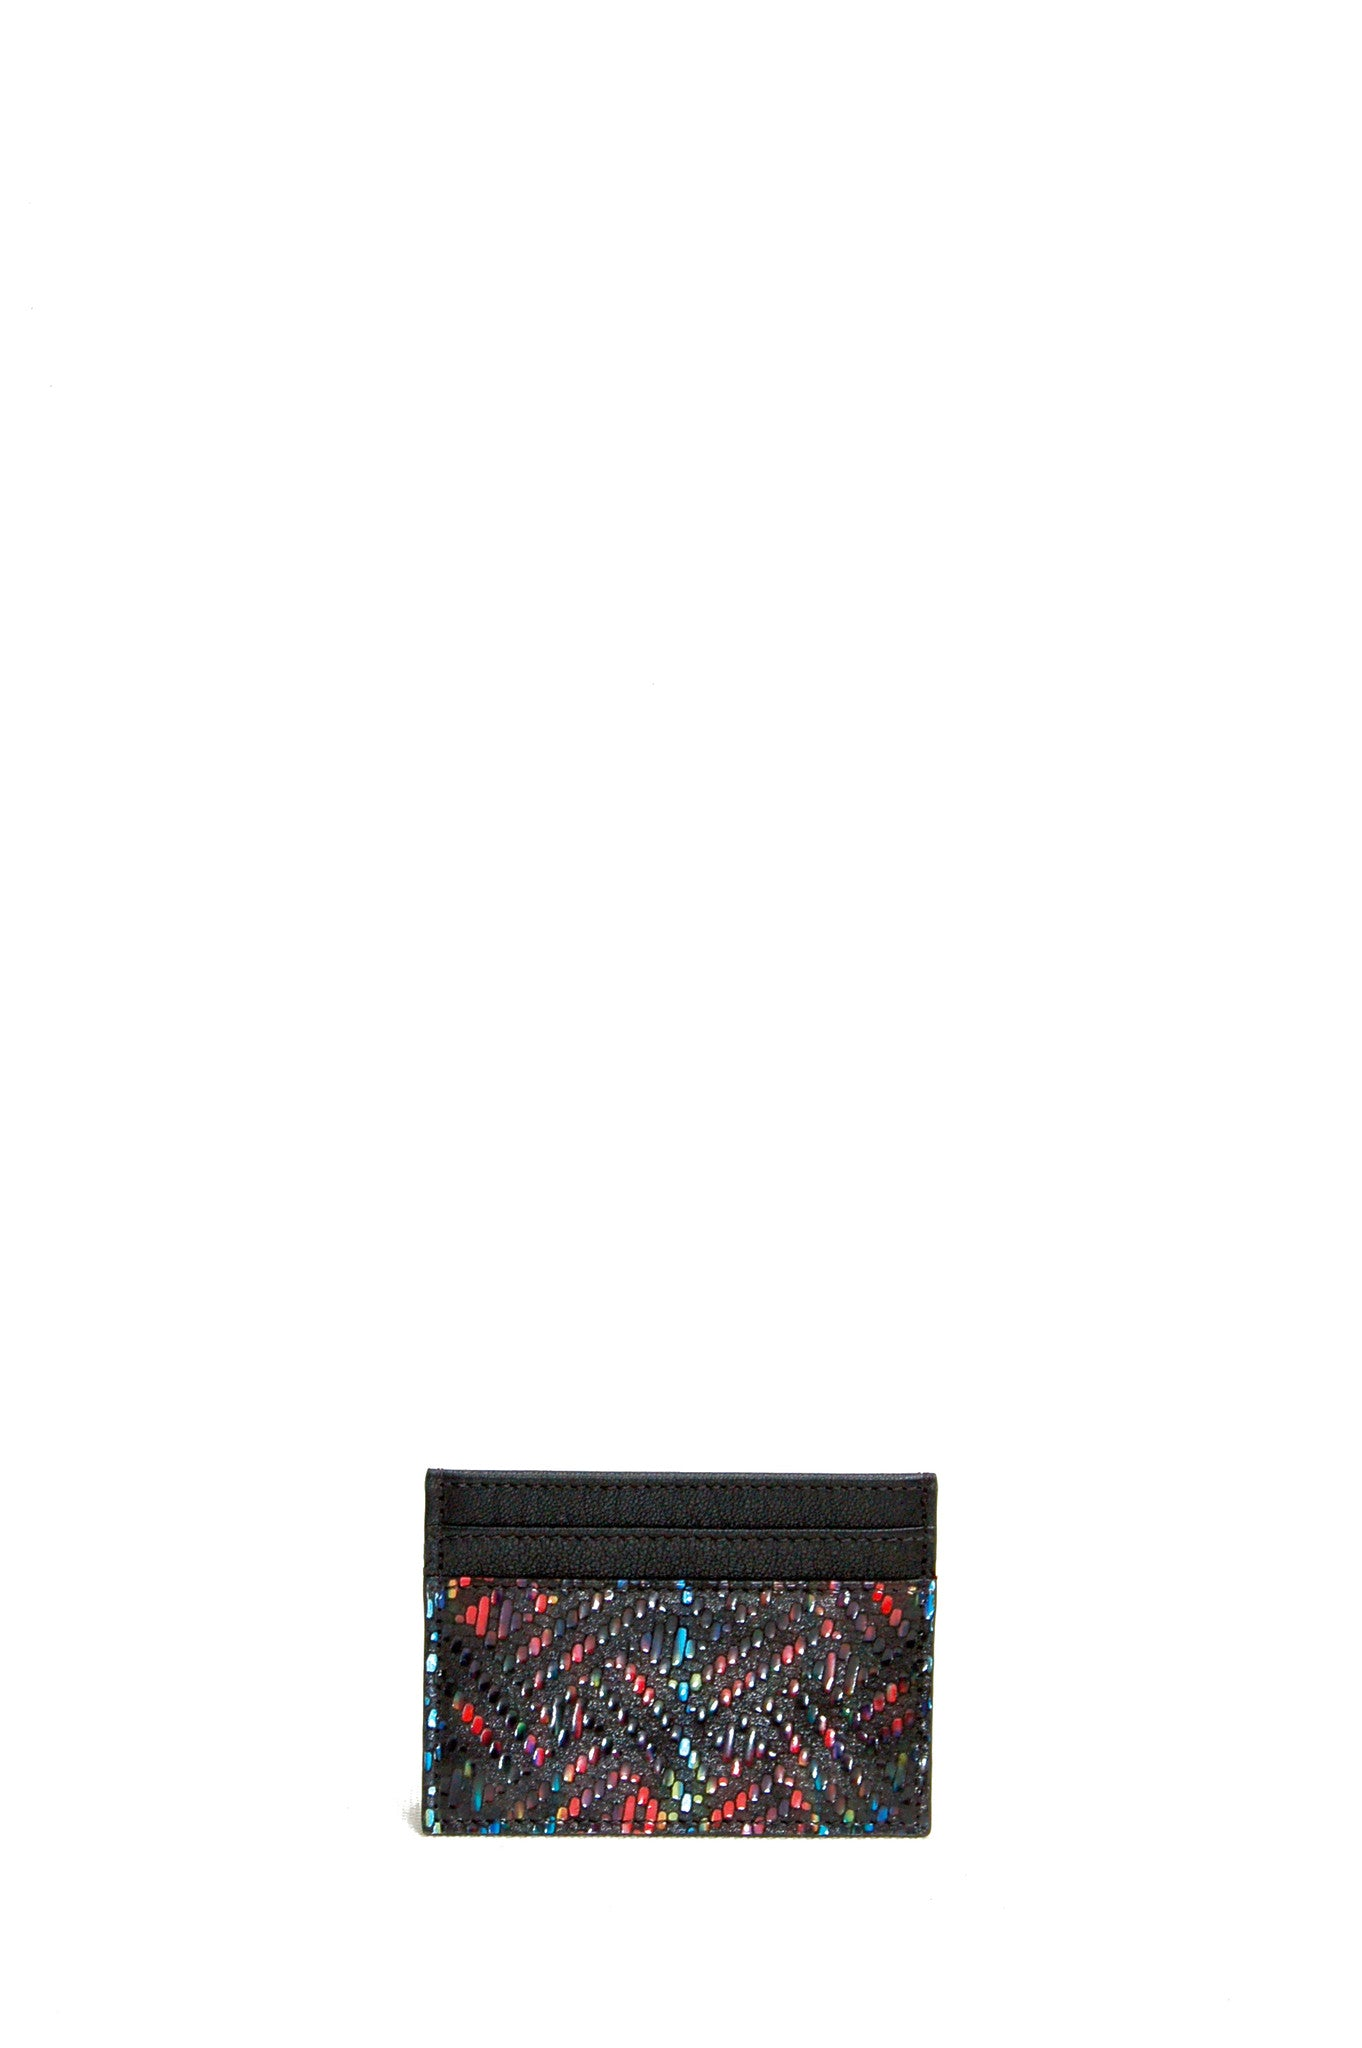 Wendee Ou: Gia cardholder black rainbow | Accessories > Wallets,Accessories -  Hiphunters Shop